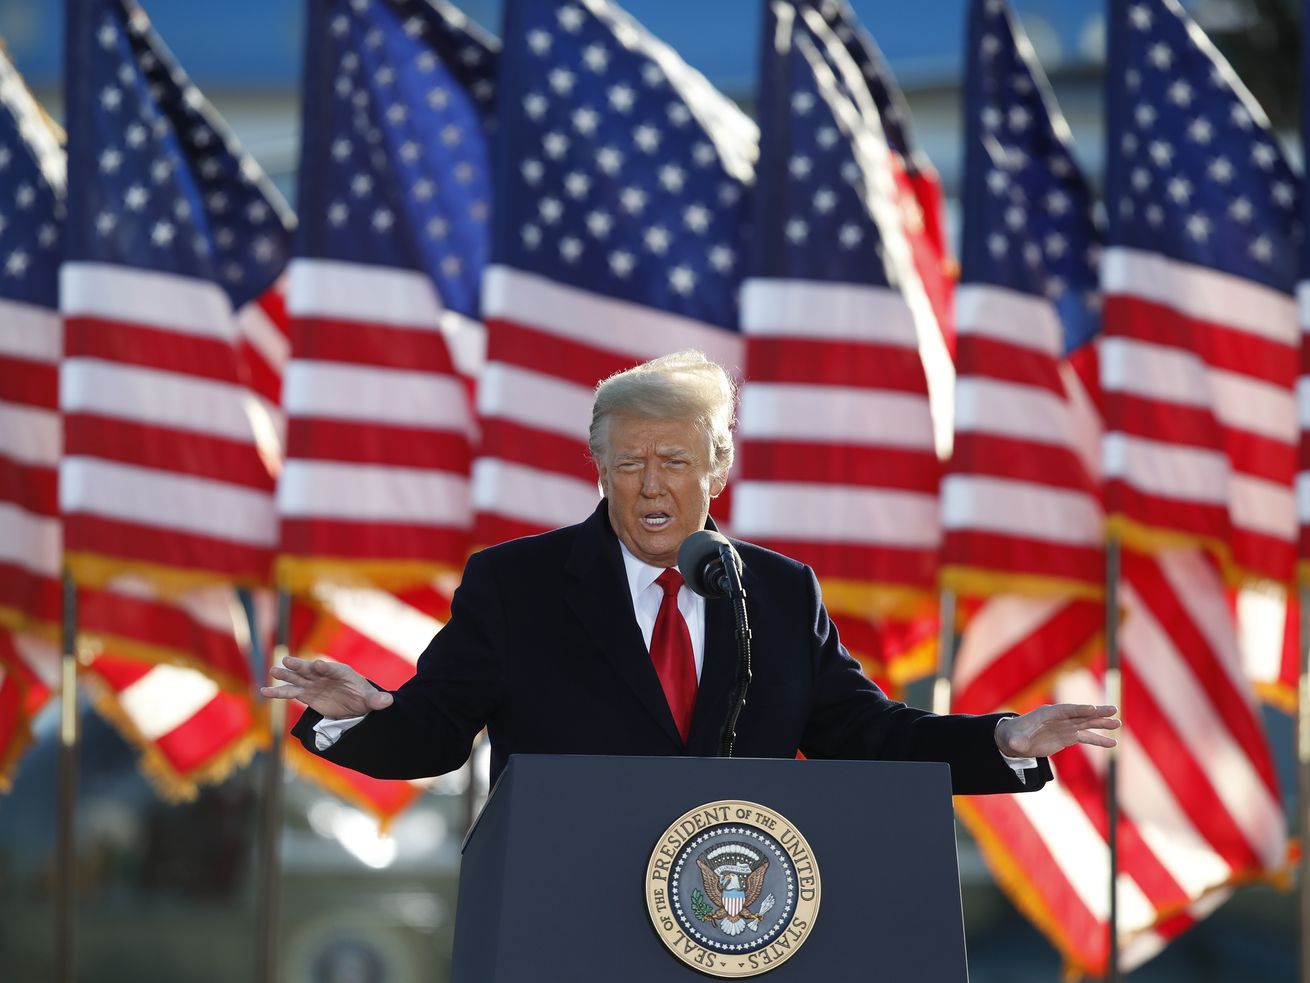 President Donald Trump speaks to crowd before boarding Air Force One at Andrews Air Force Base, Md., in this Wednesday, Jan. 20, 2021, file photo. Former President Donald Trump will find out this week whether he gets to return to Facebook.